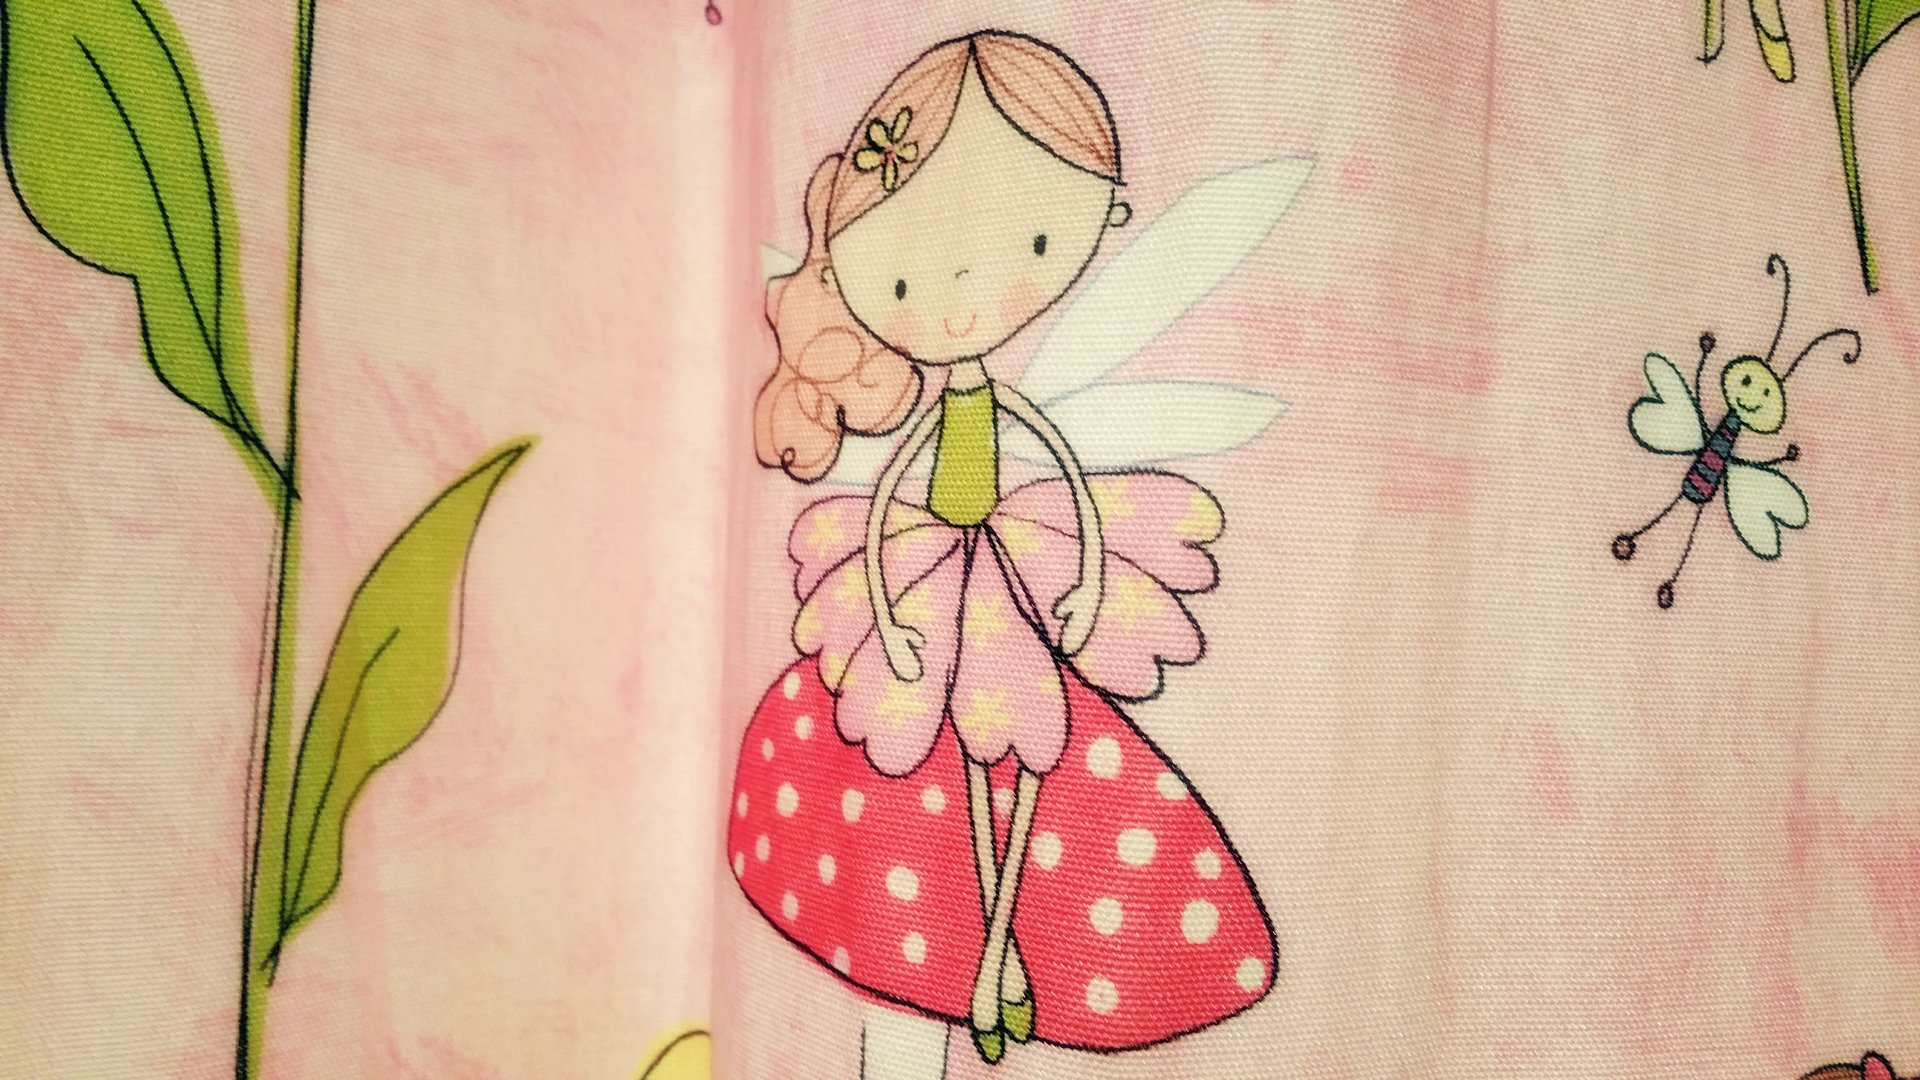 A tooth fairy that will eventually get your dentures at night